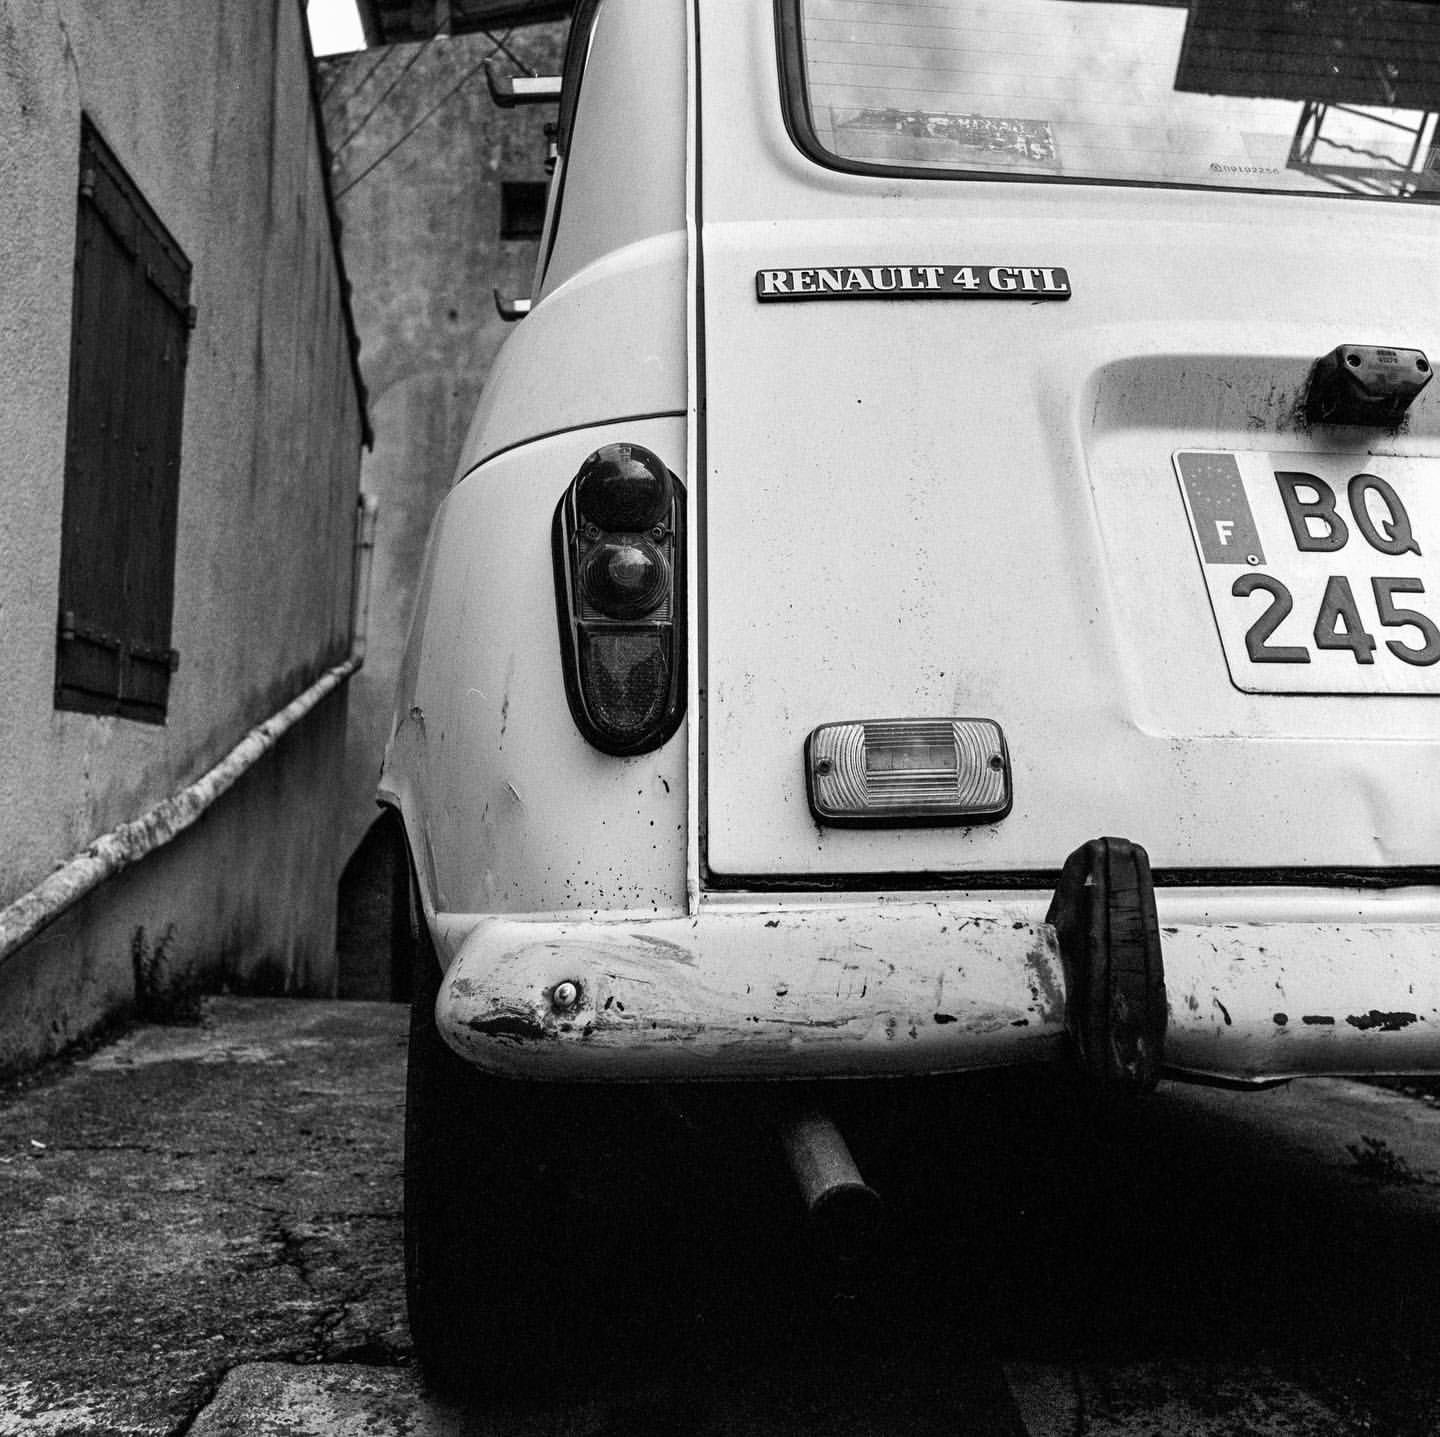 Posts tagged as #renault4gtl | Picpanzee